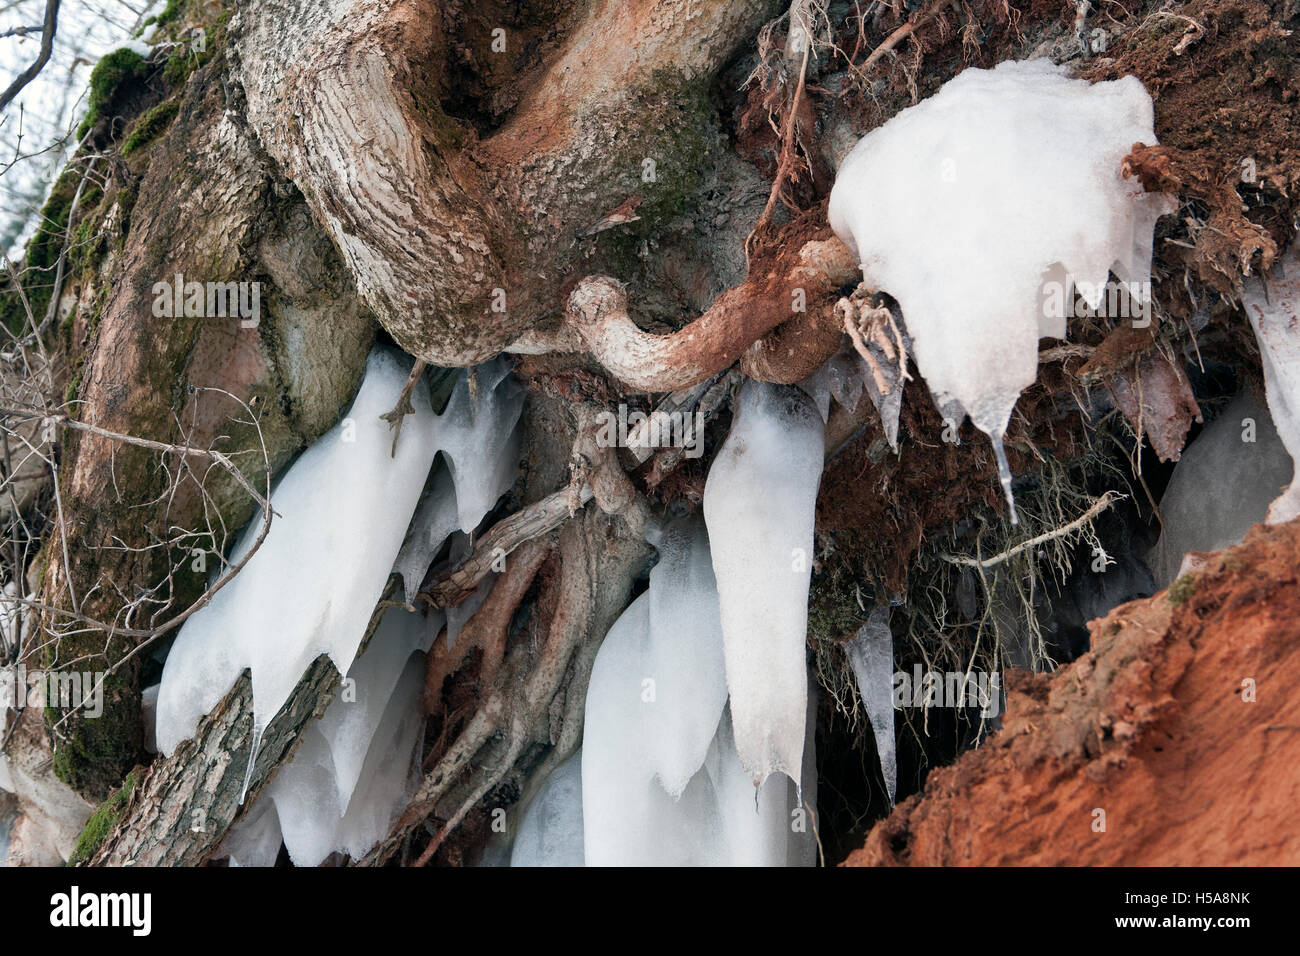 Open tree roots with hanging icicles in closeup - Stock Image